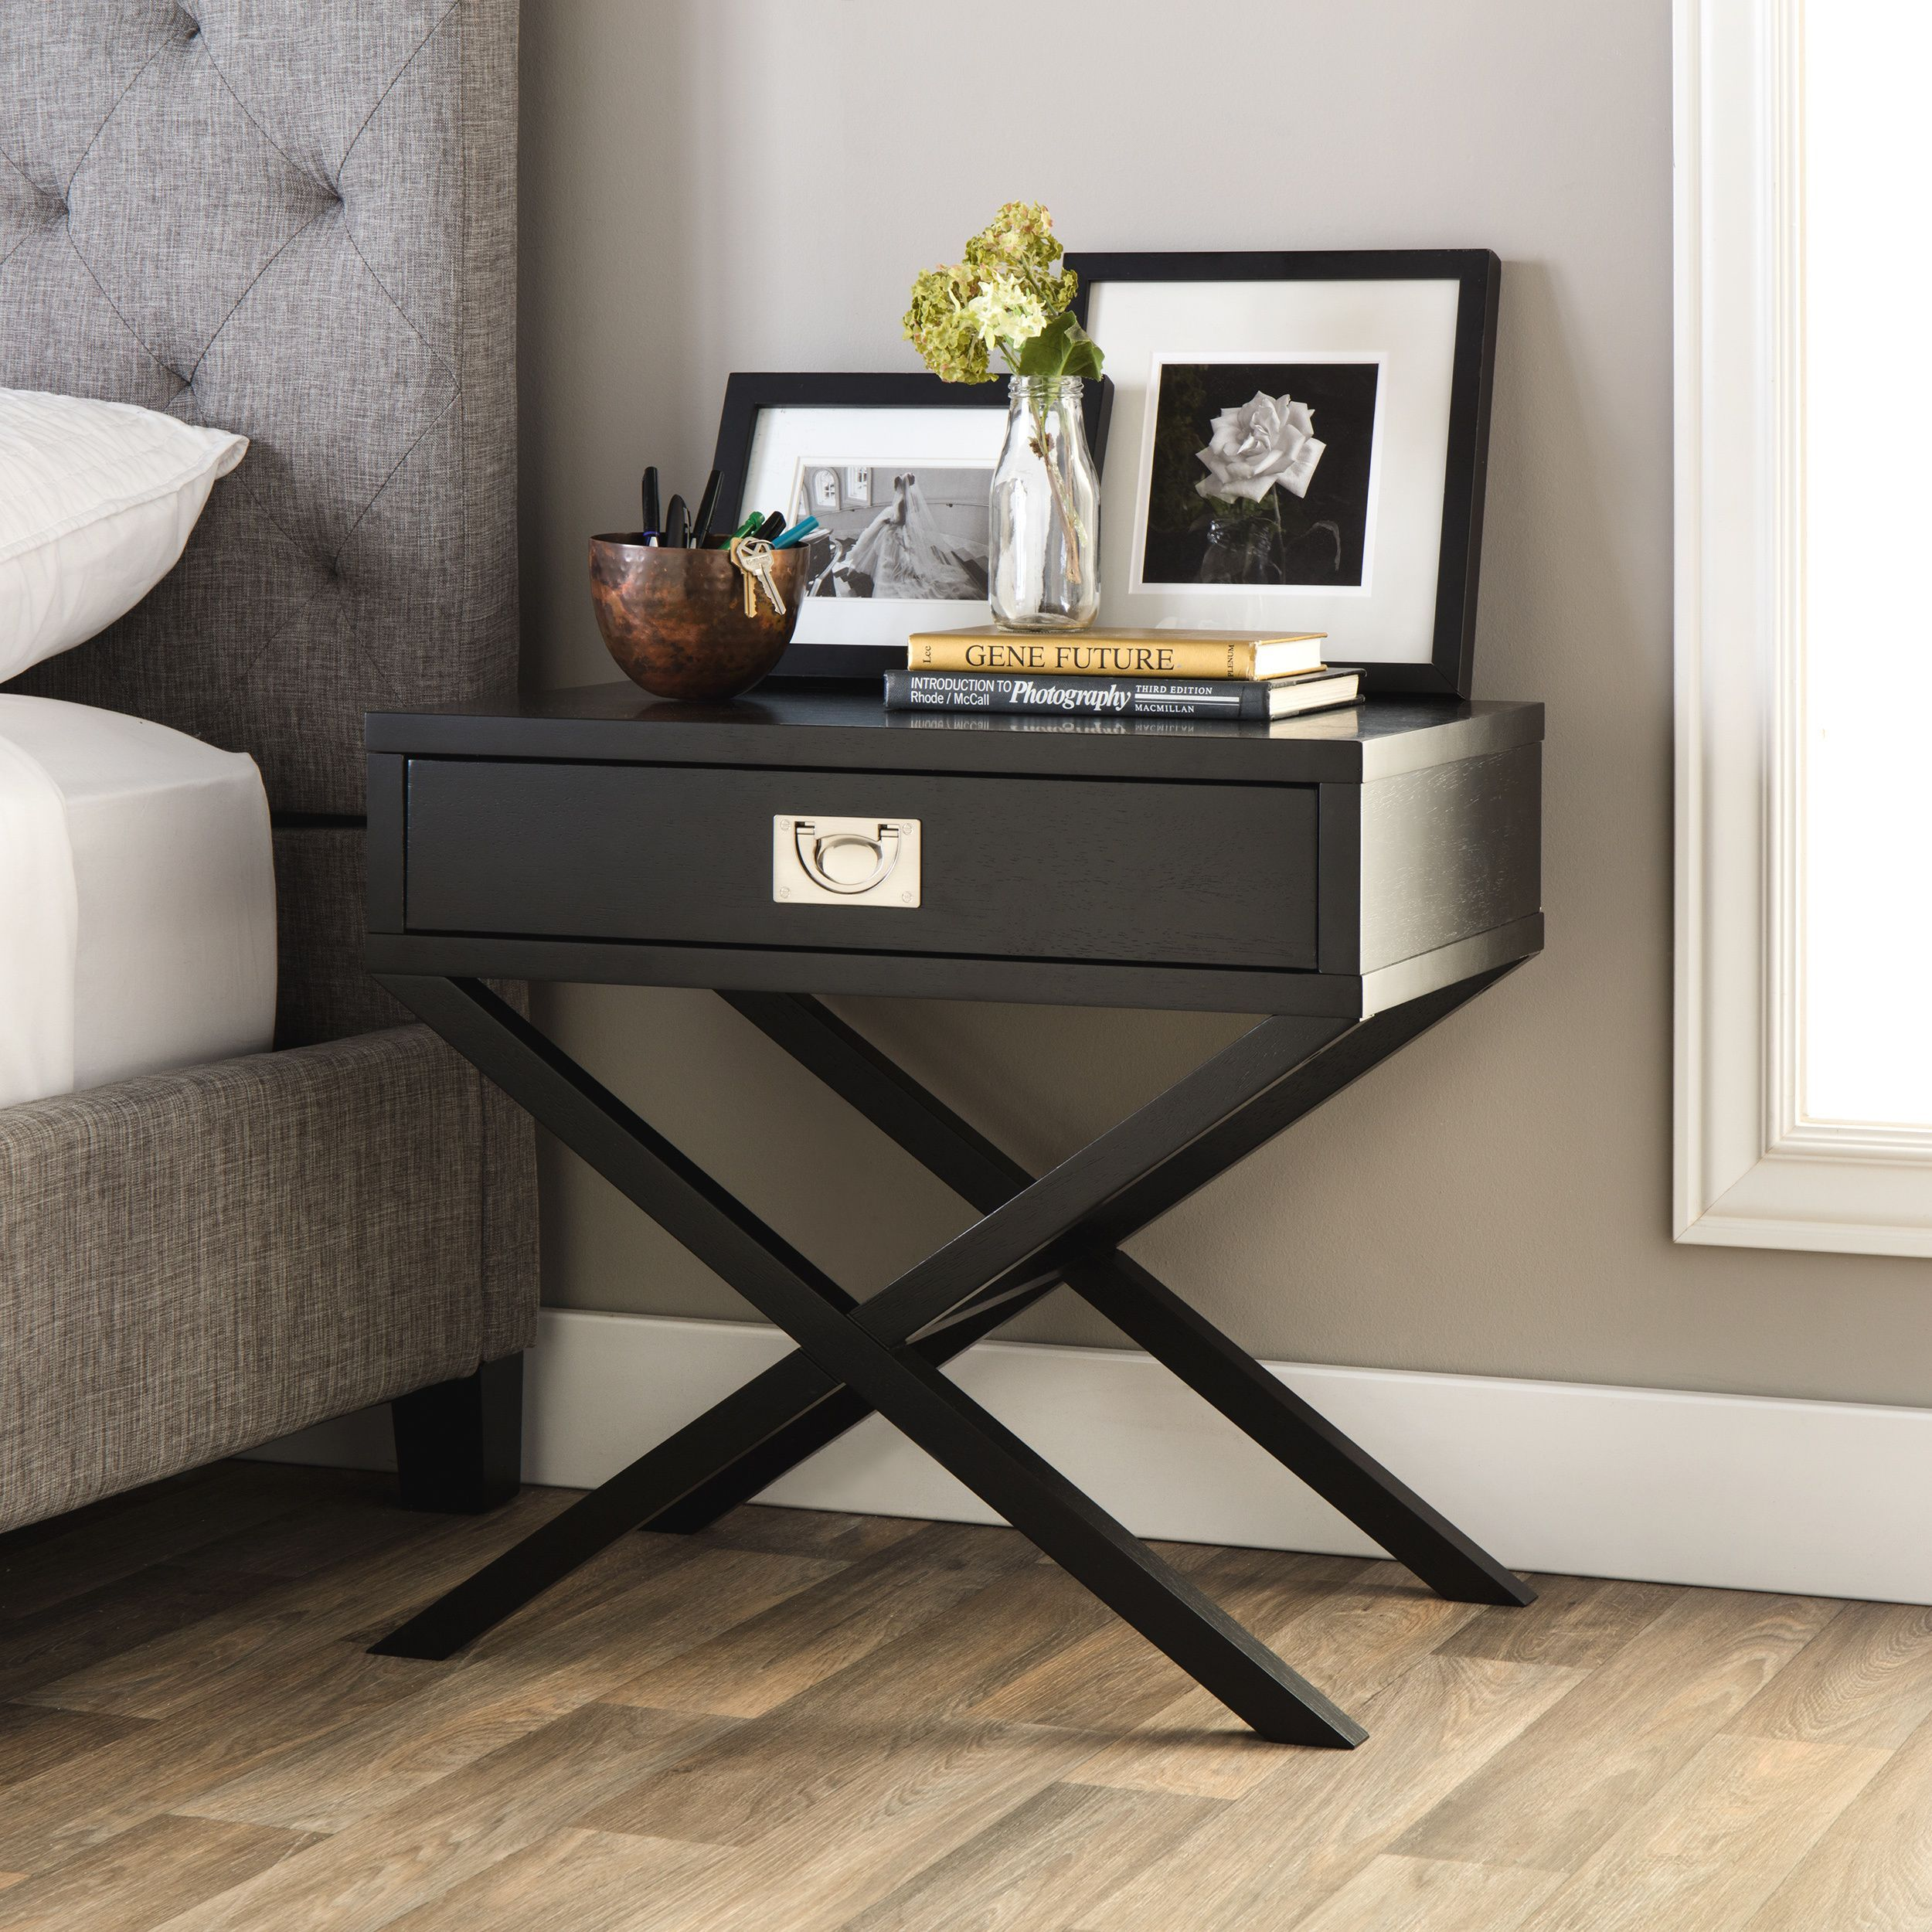 This Stylish Wood Beside Table Is Ideal For Use Next To